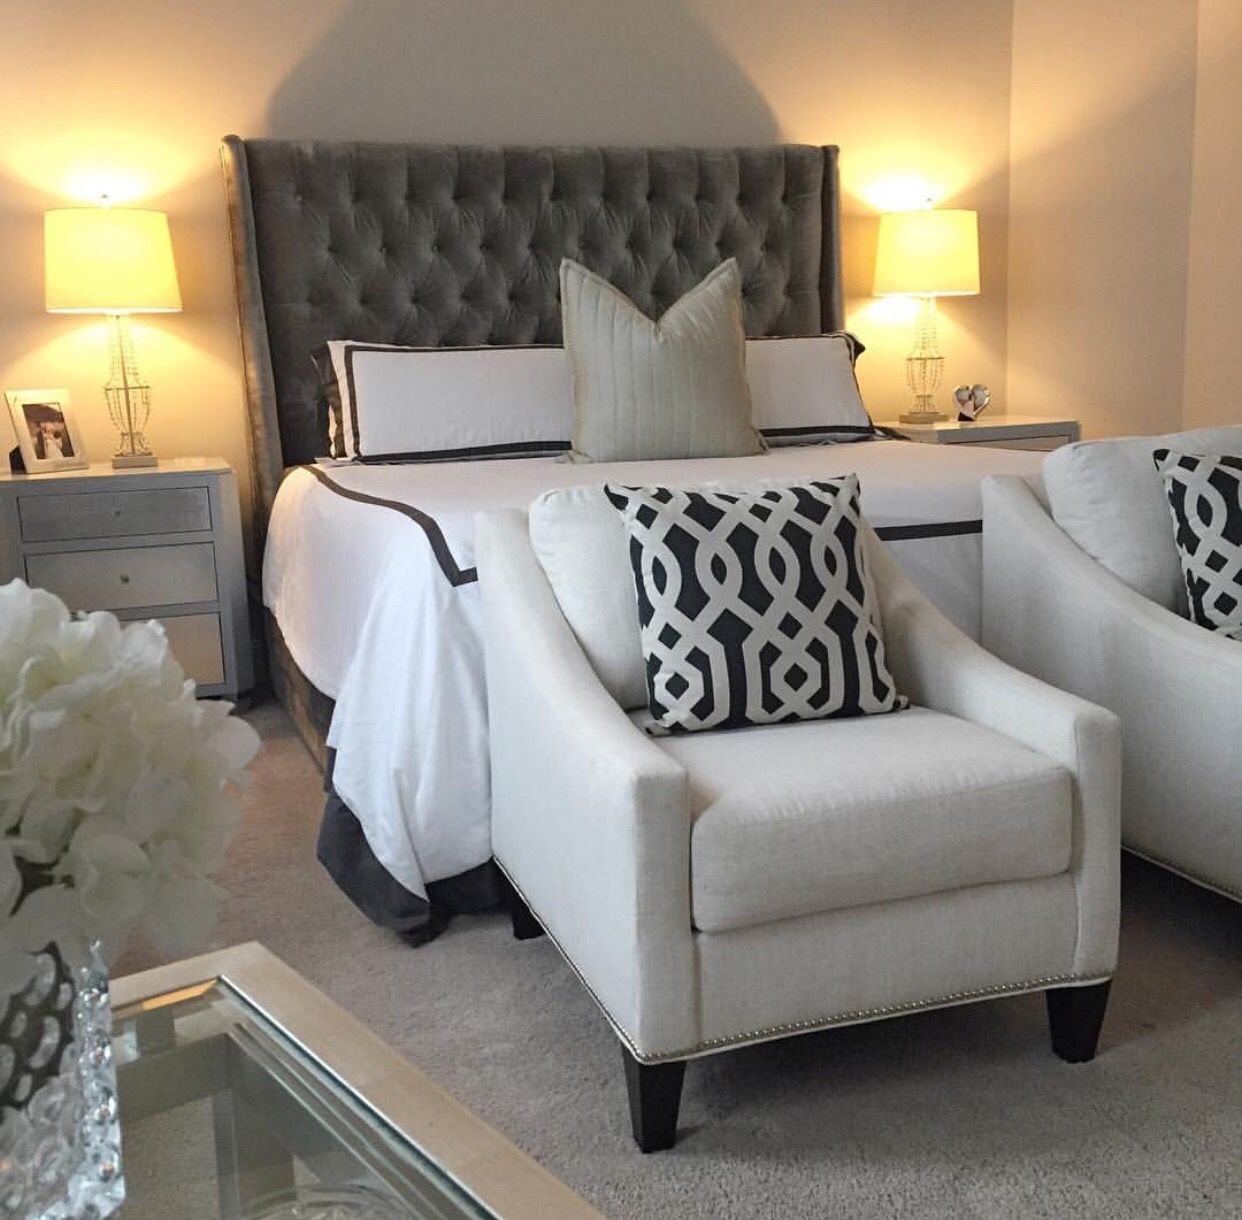 Pin by Alonna Davis on Home Decor: Ideas for the Move  Bedroom